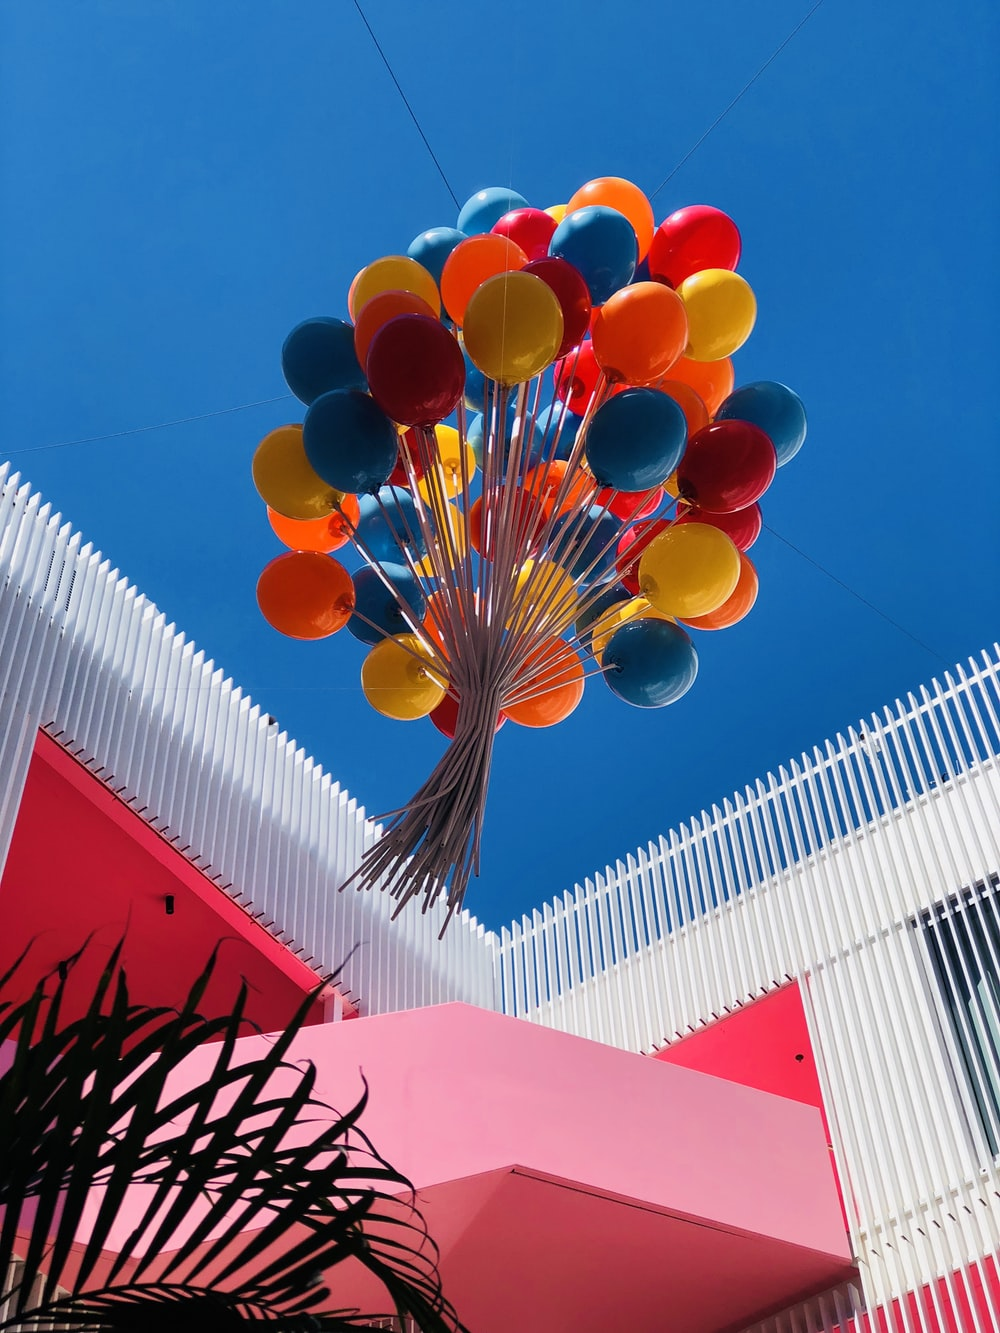 red yellow and blue balloons